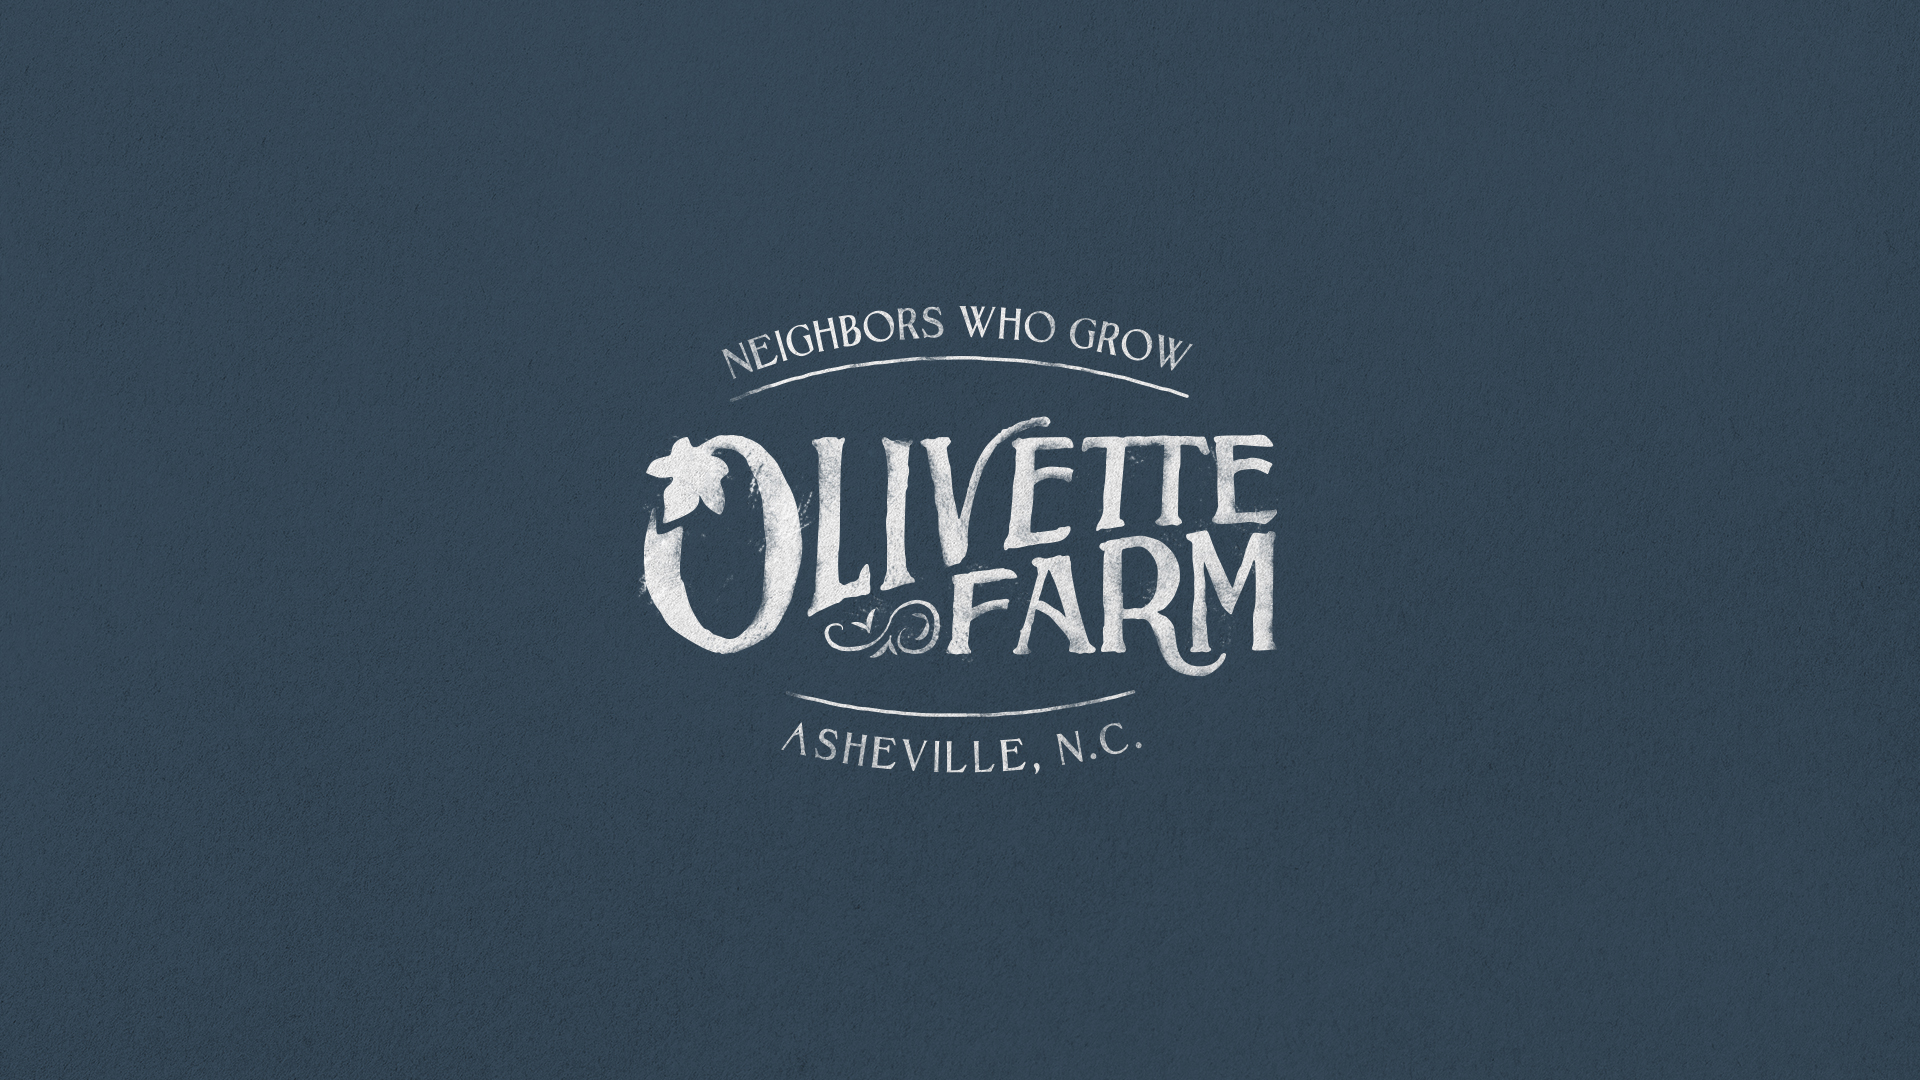 "Olivette Farm, ""Neighbors who Grow"" Asheville N.C. textured logo stamp lockup, showing the branding design by Russell Shaw, custom lettering for the visual identity on a navy background."